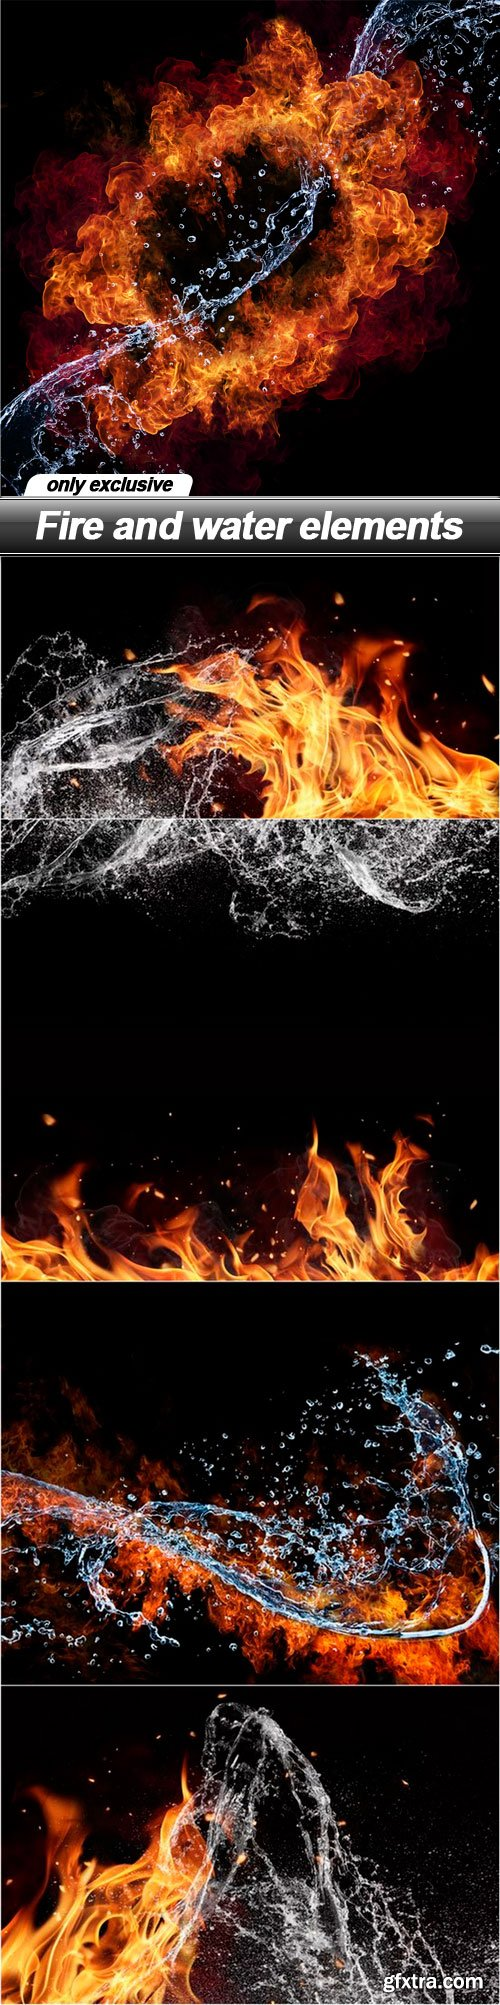 Fire and water elements - 5 UHQ JPEG